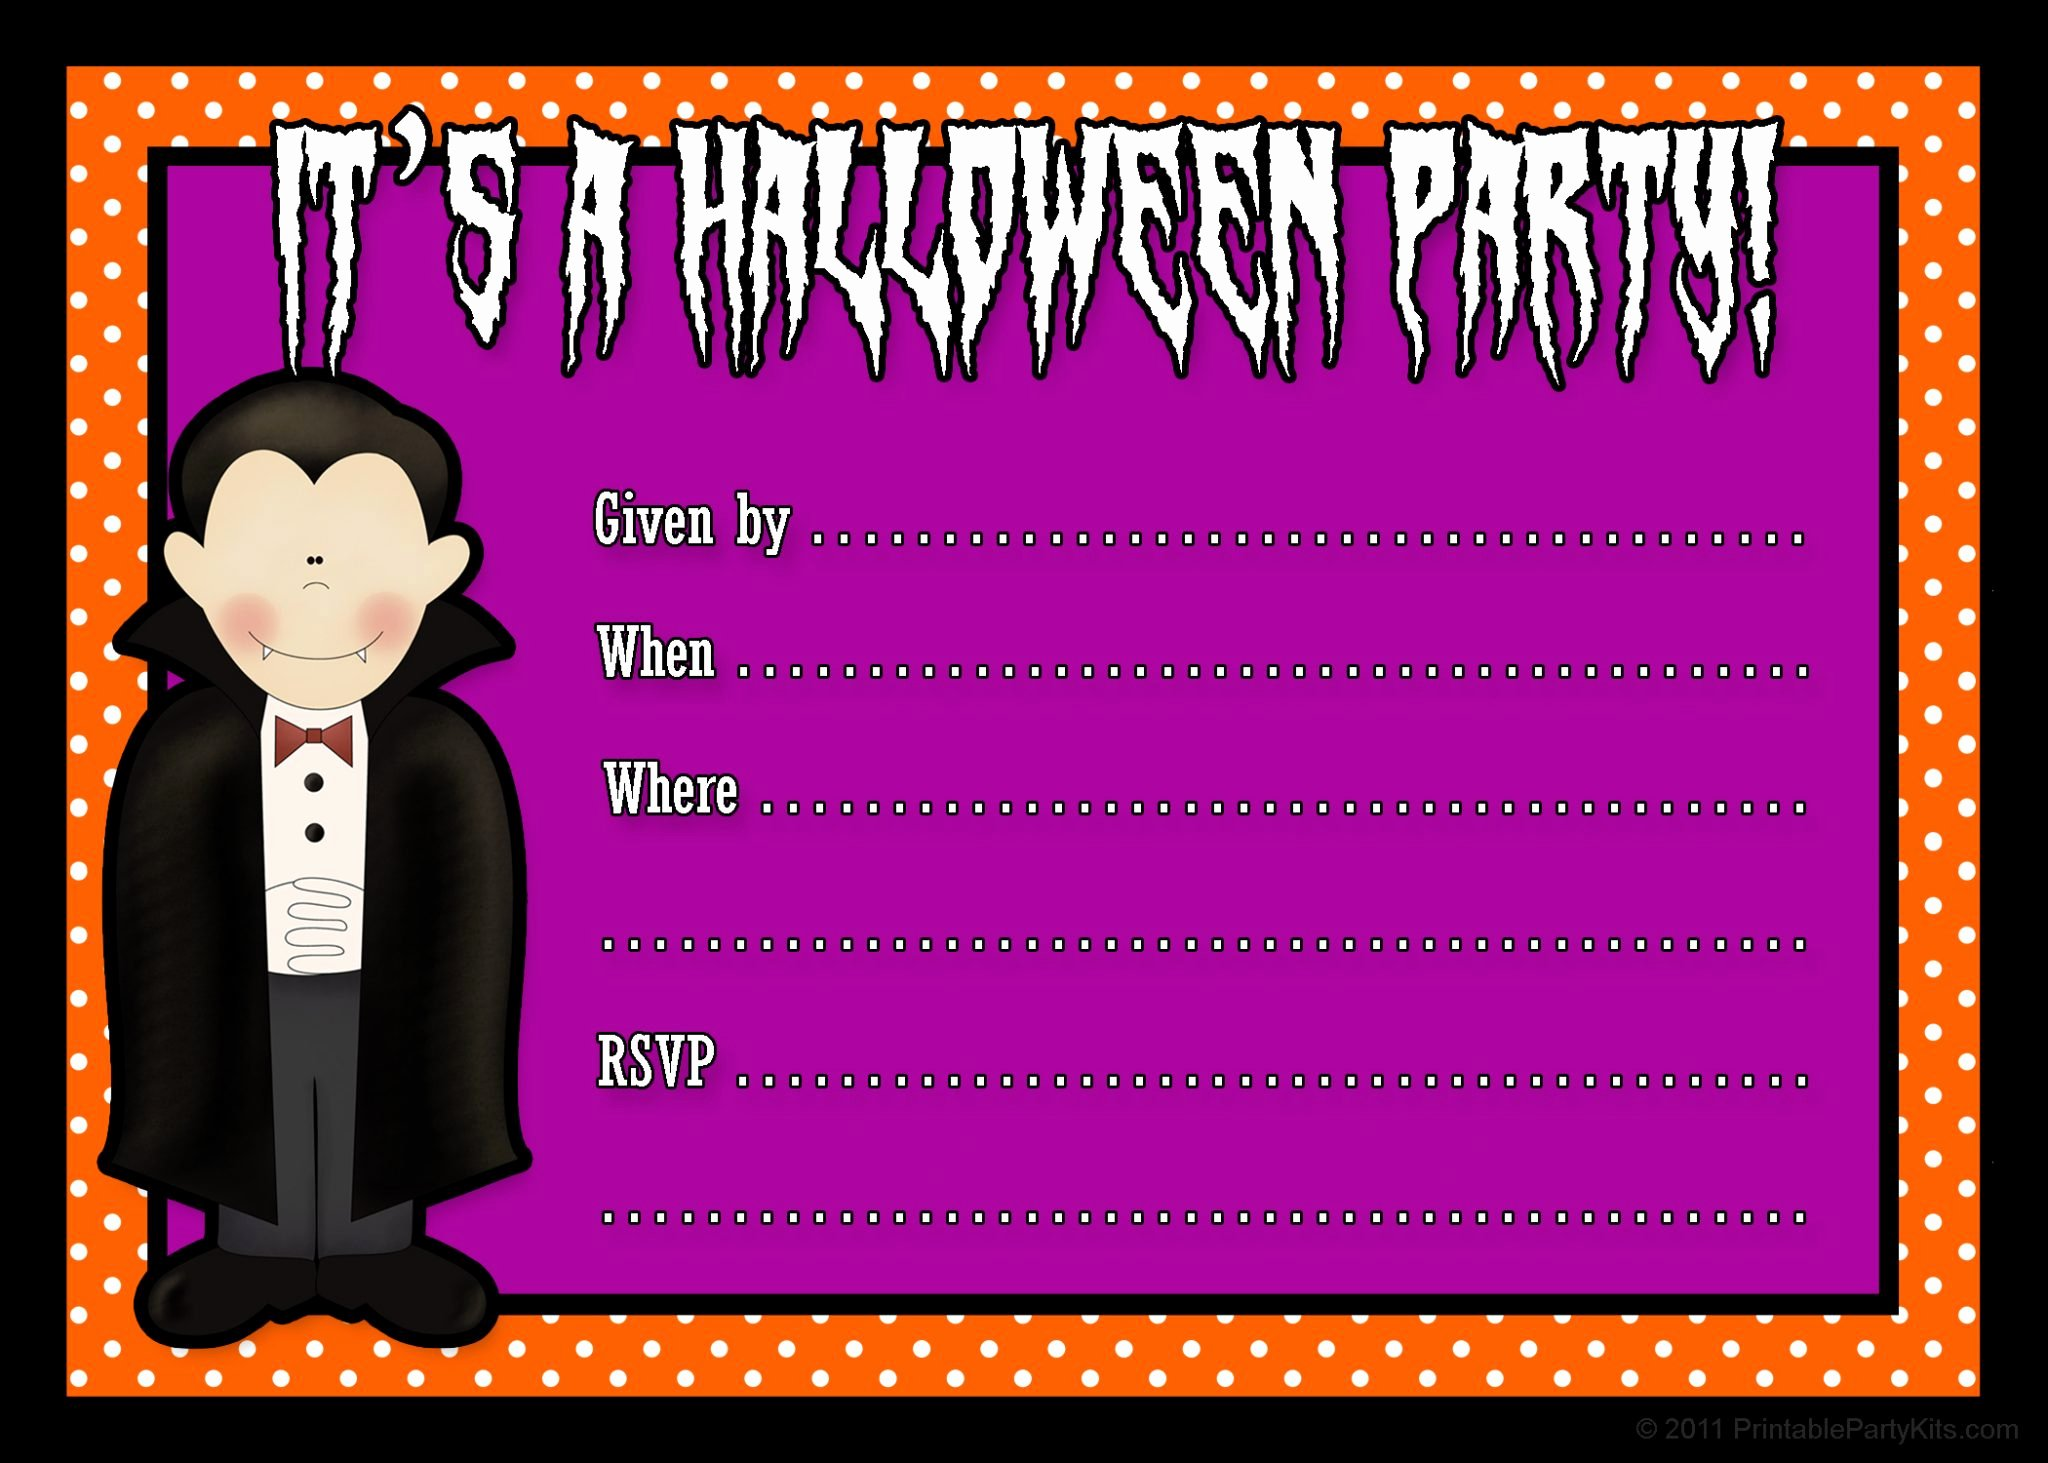 Halloween Party Invitations Template Fresh Free Printable Halloween Party Invites